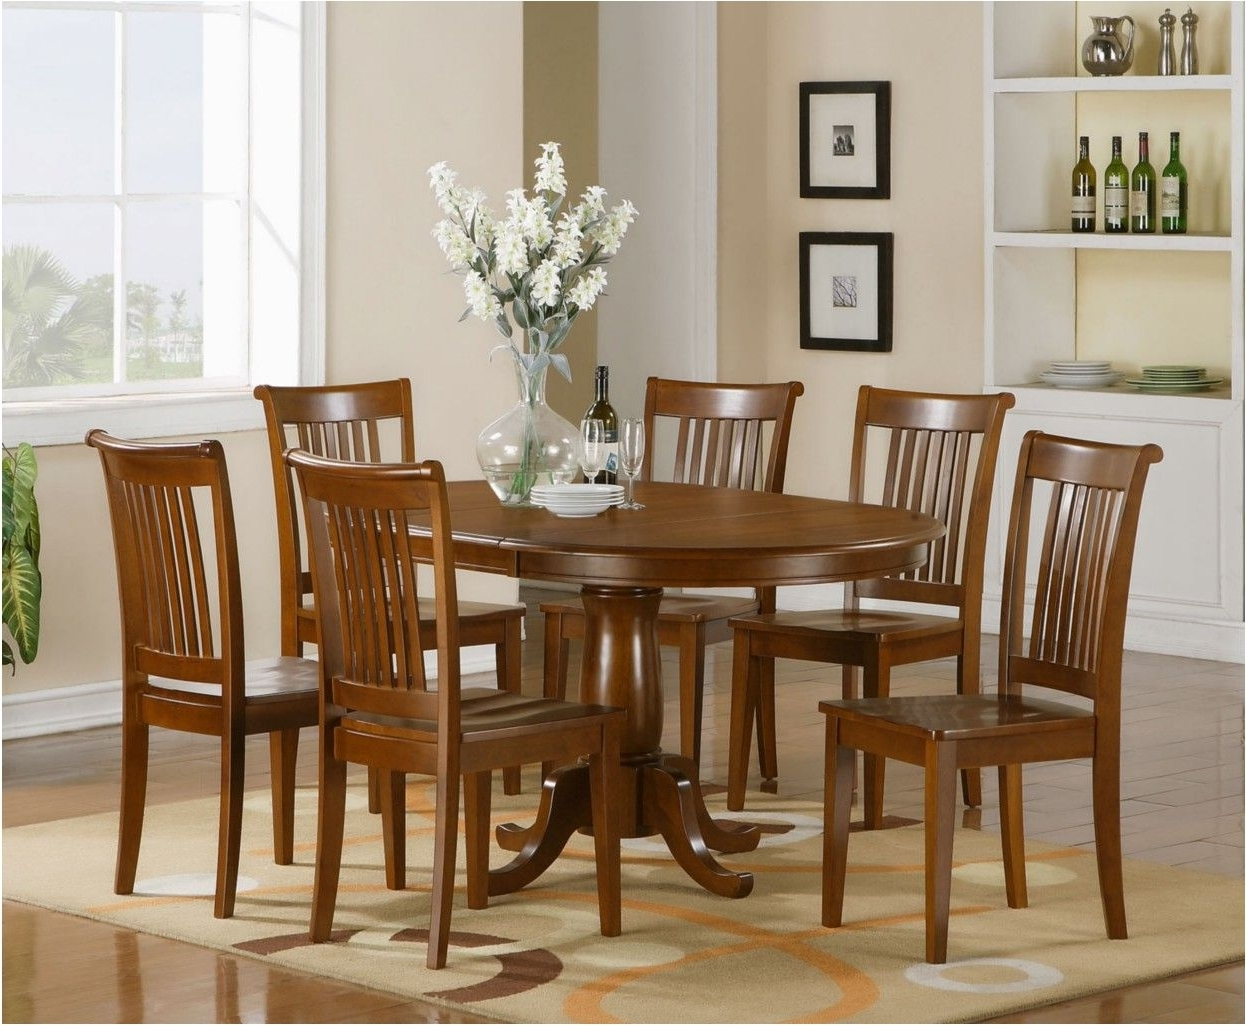 Delightful Dining Room Chair Sets 6 Dining Room Decor Ideas And For Well Known Dining Table Chair Sets (View 8 of 25)